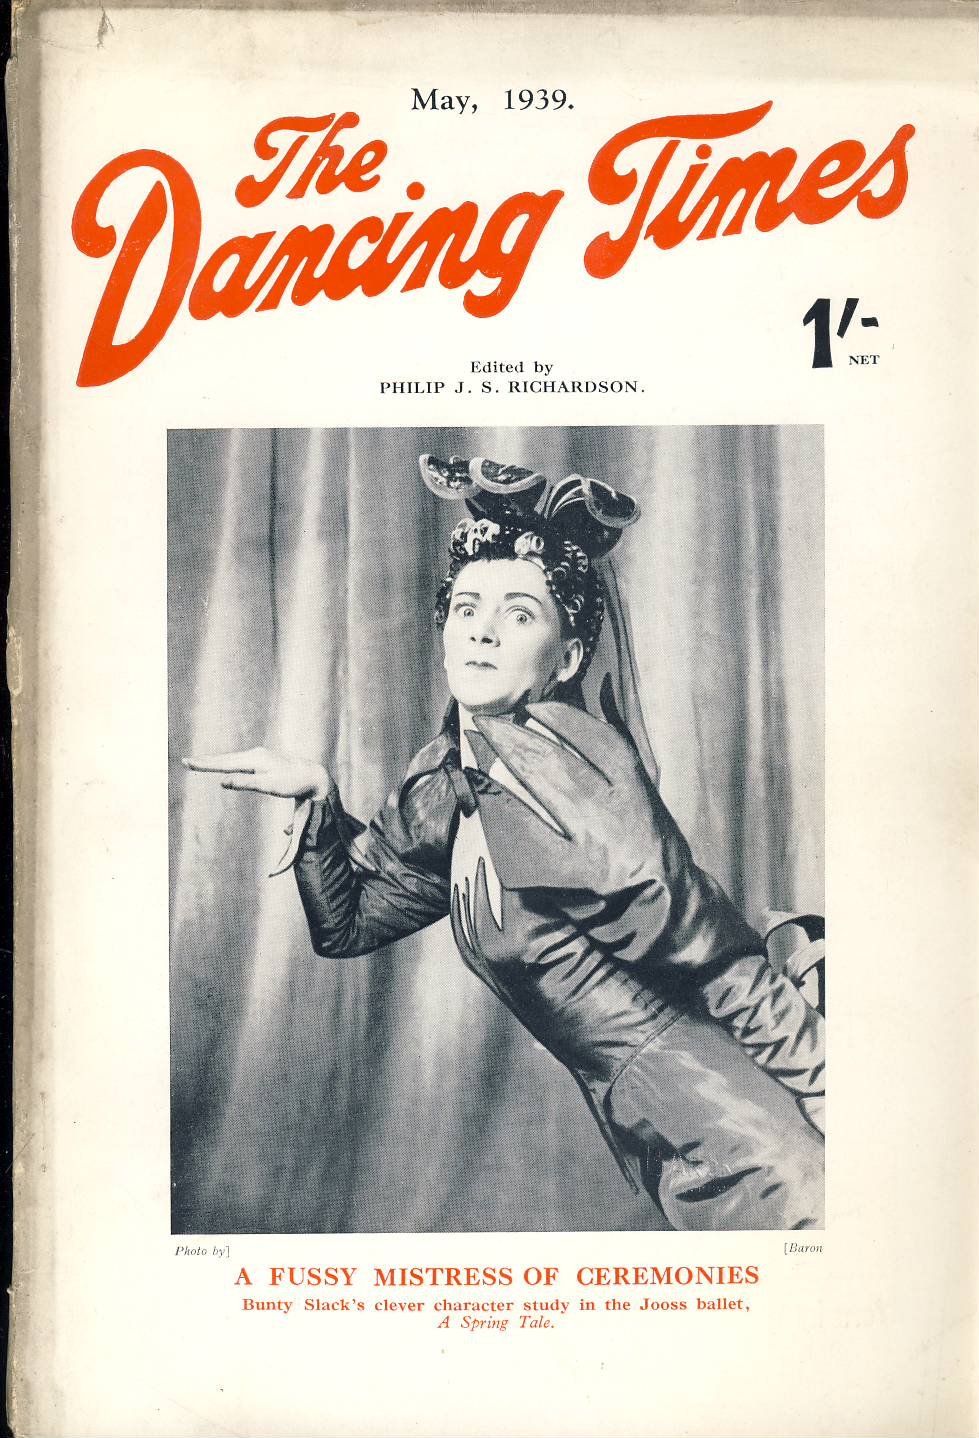 May 1939 The Dancing Times magazine Bunty Slack Jooss Ballet Spring Tale JOY NEWTON photo on inside front cover. A review of dancing in its many phases - containing articles and photos. Some vintage adverts for dancing schools. This is a vintage magazine. Text and photos clean and bright inside. The covers are badly marked with scuffs and tears to spines. Staples rusting so cover coming away from text. Please read the full description and see photo.